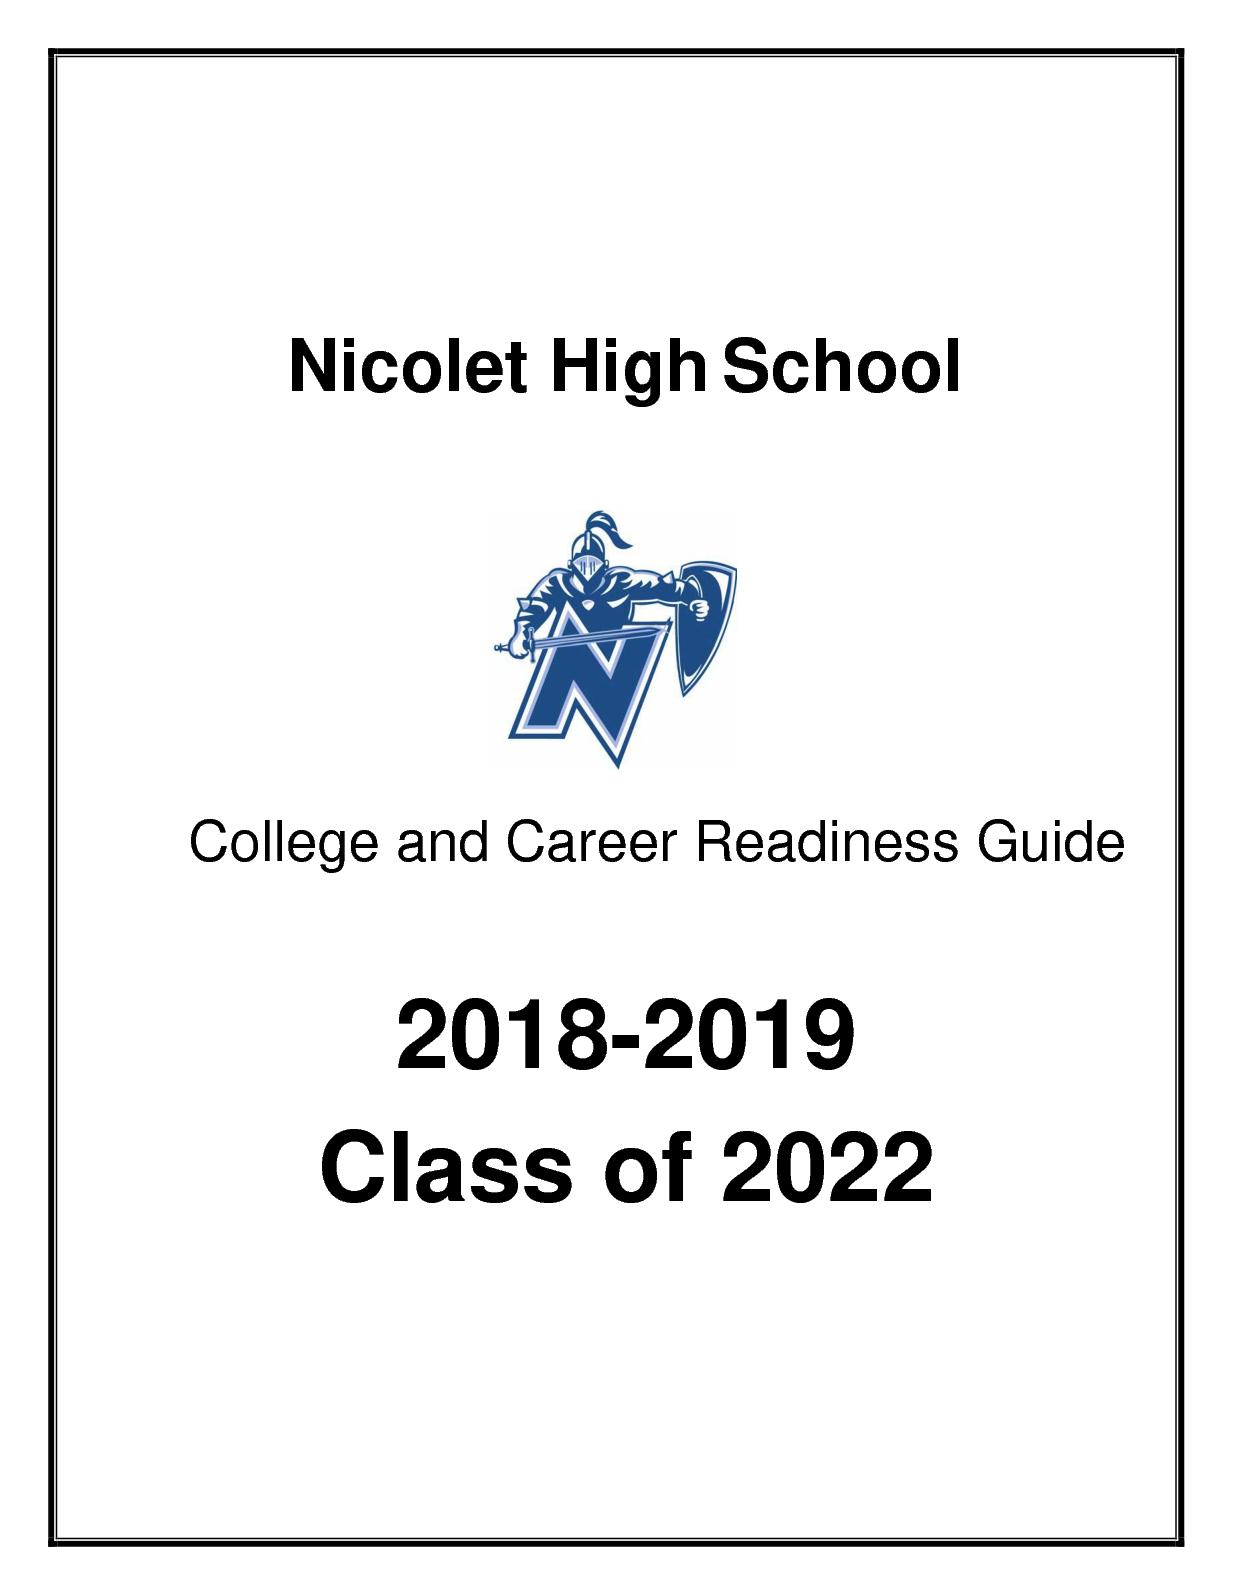 Calamo 2018 2019 College And Career Readiness Guide For 9th Grade Motorcyle Alarm 8211 The Circuit Board Switches Must Be Protected From Elements